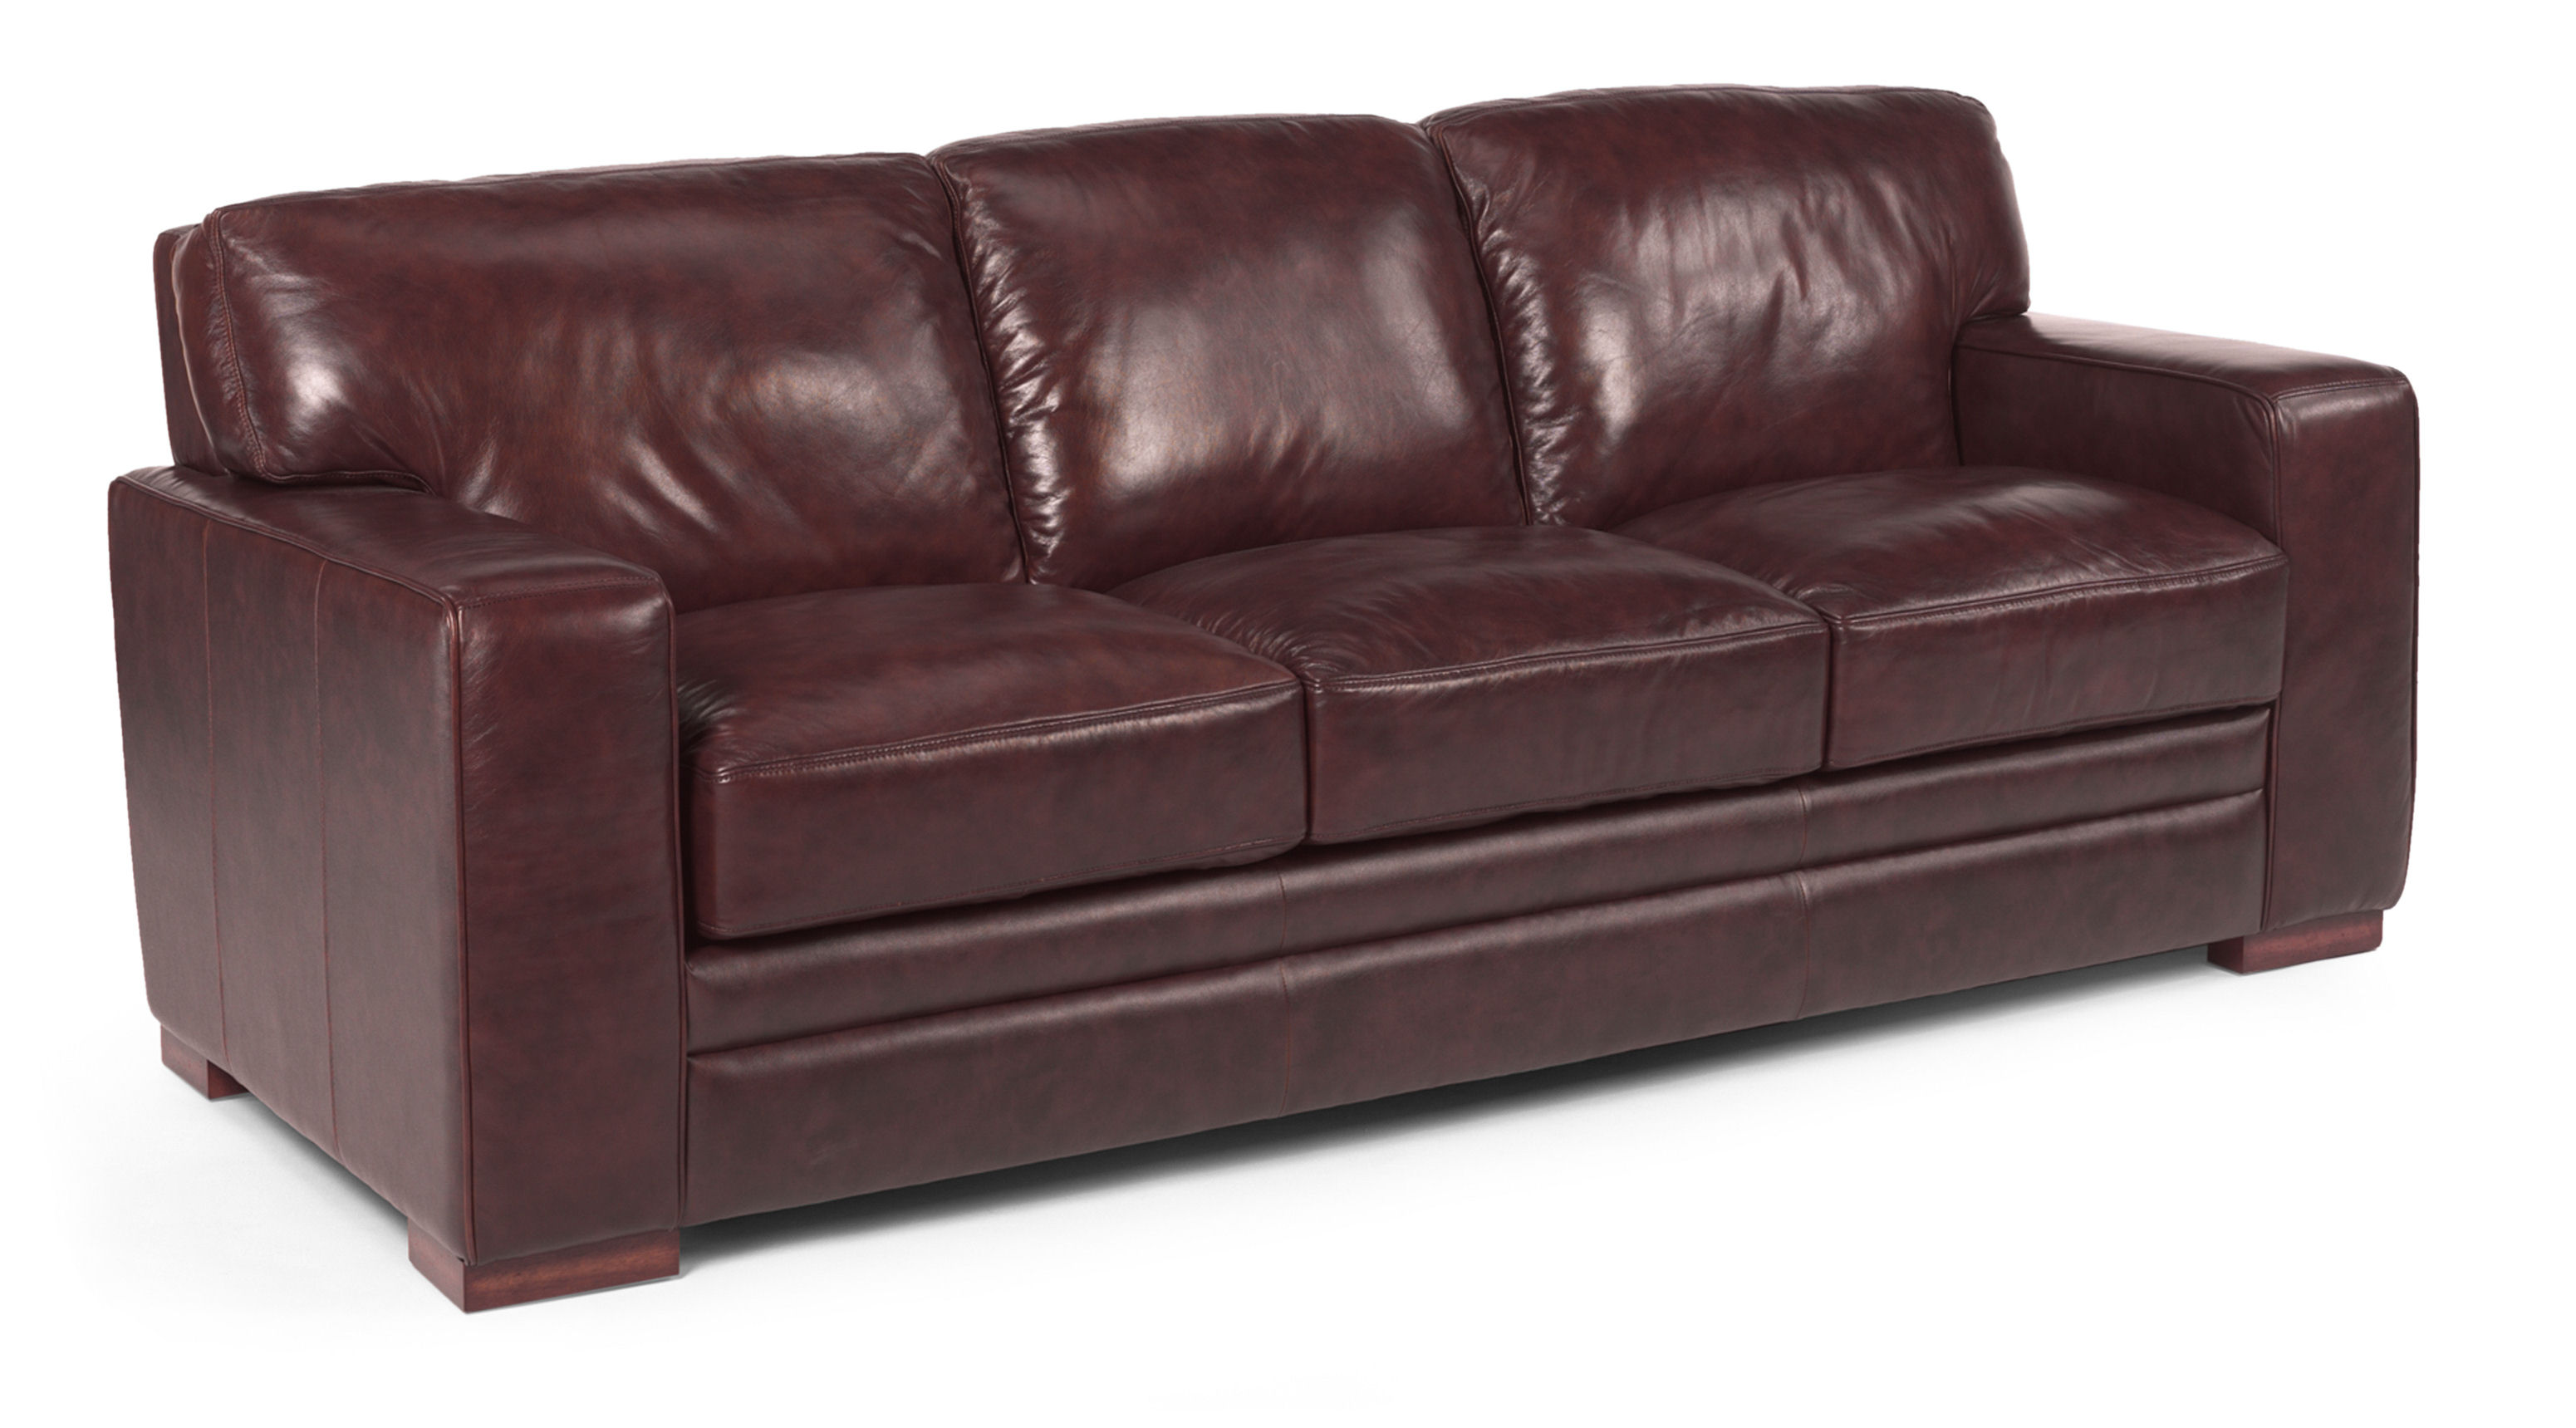 vandenberg flexsteel recliners style tables living sectional rooms kalamazoo battle sofas classic furniture